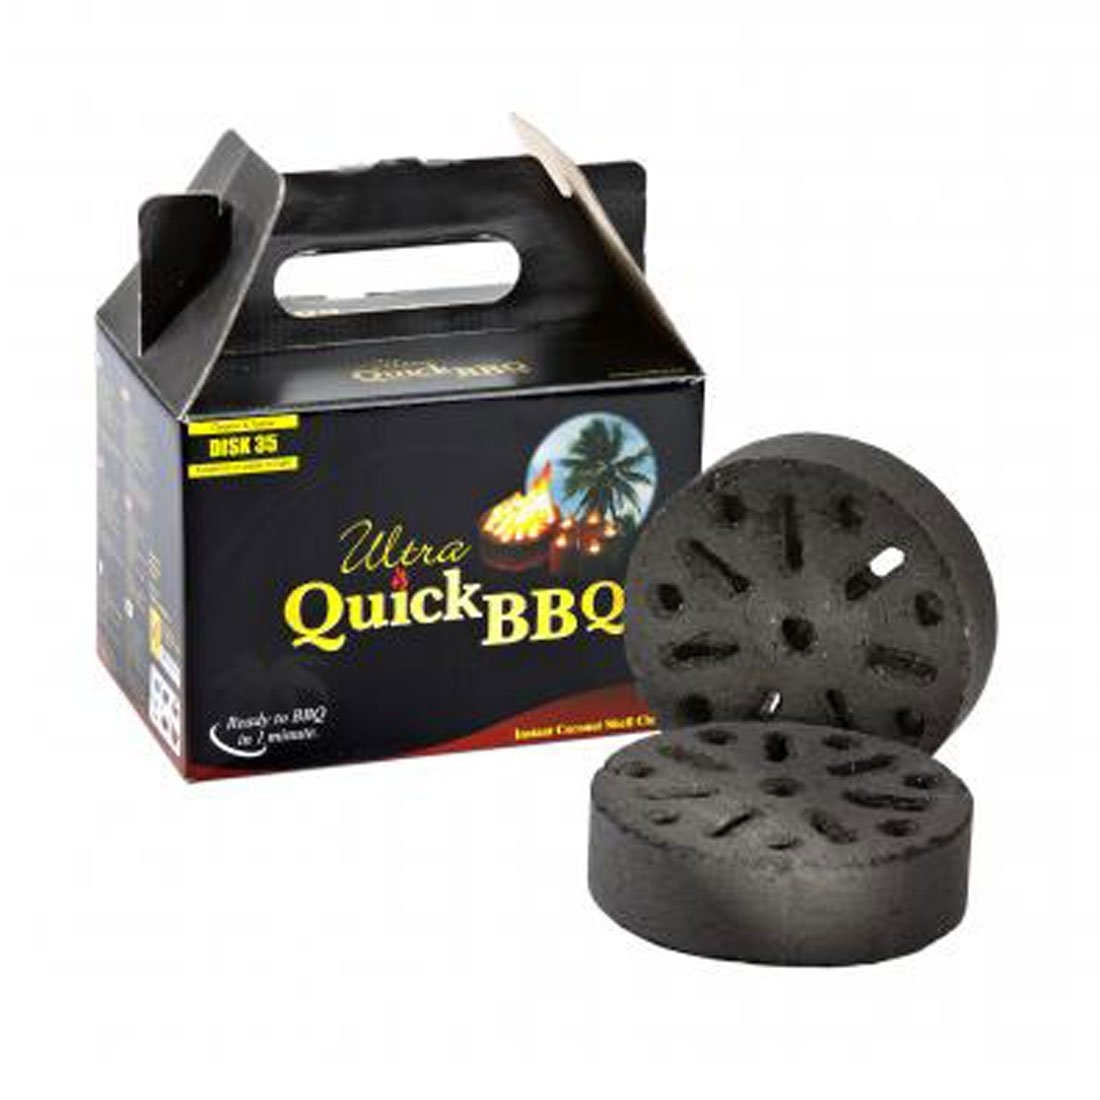 Cobb Scandinavia rapide APS 670615 briquettes de barbecue Cobb Scandinavia APS